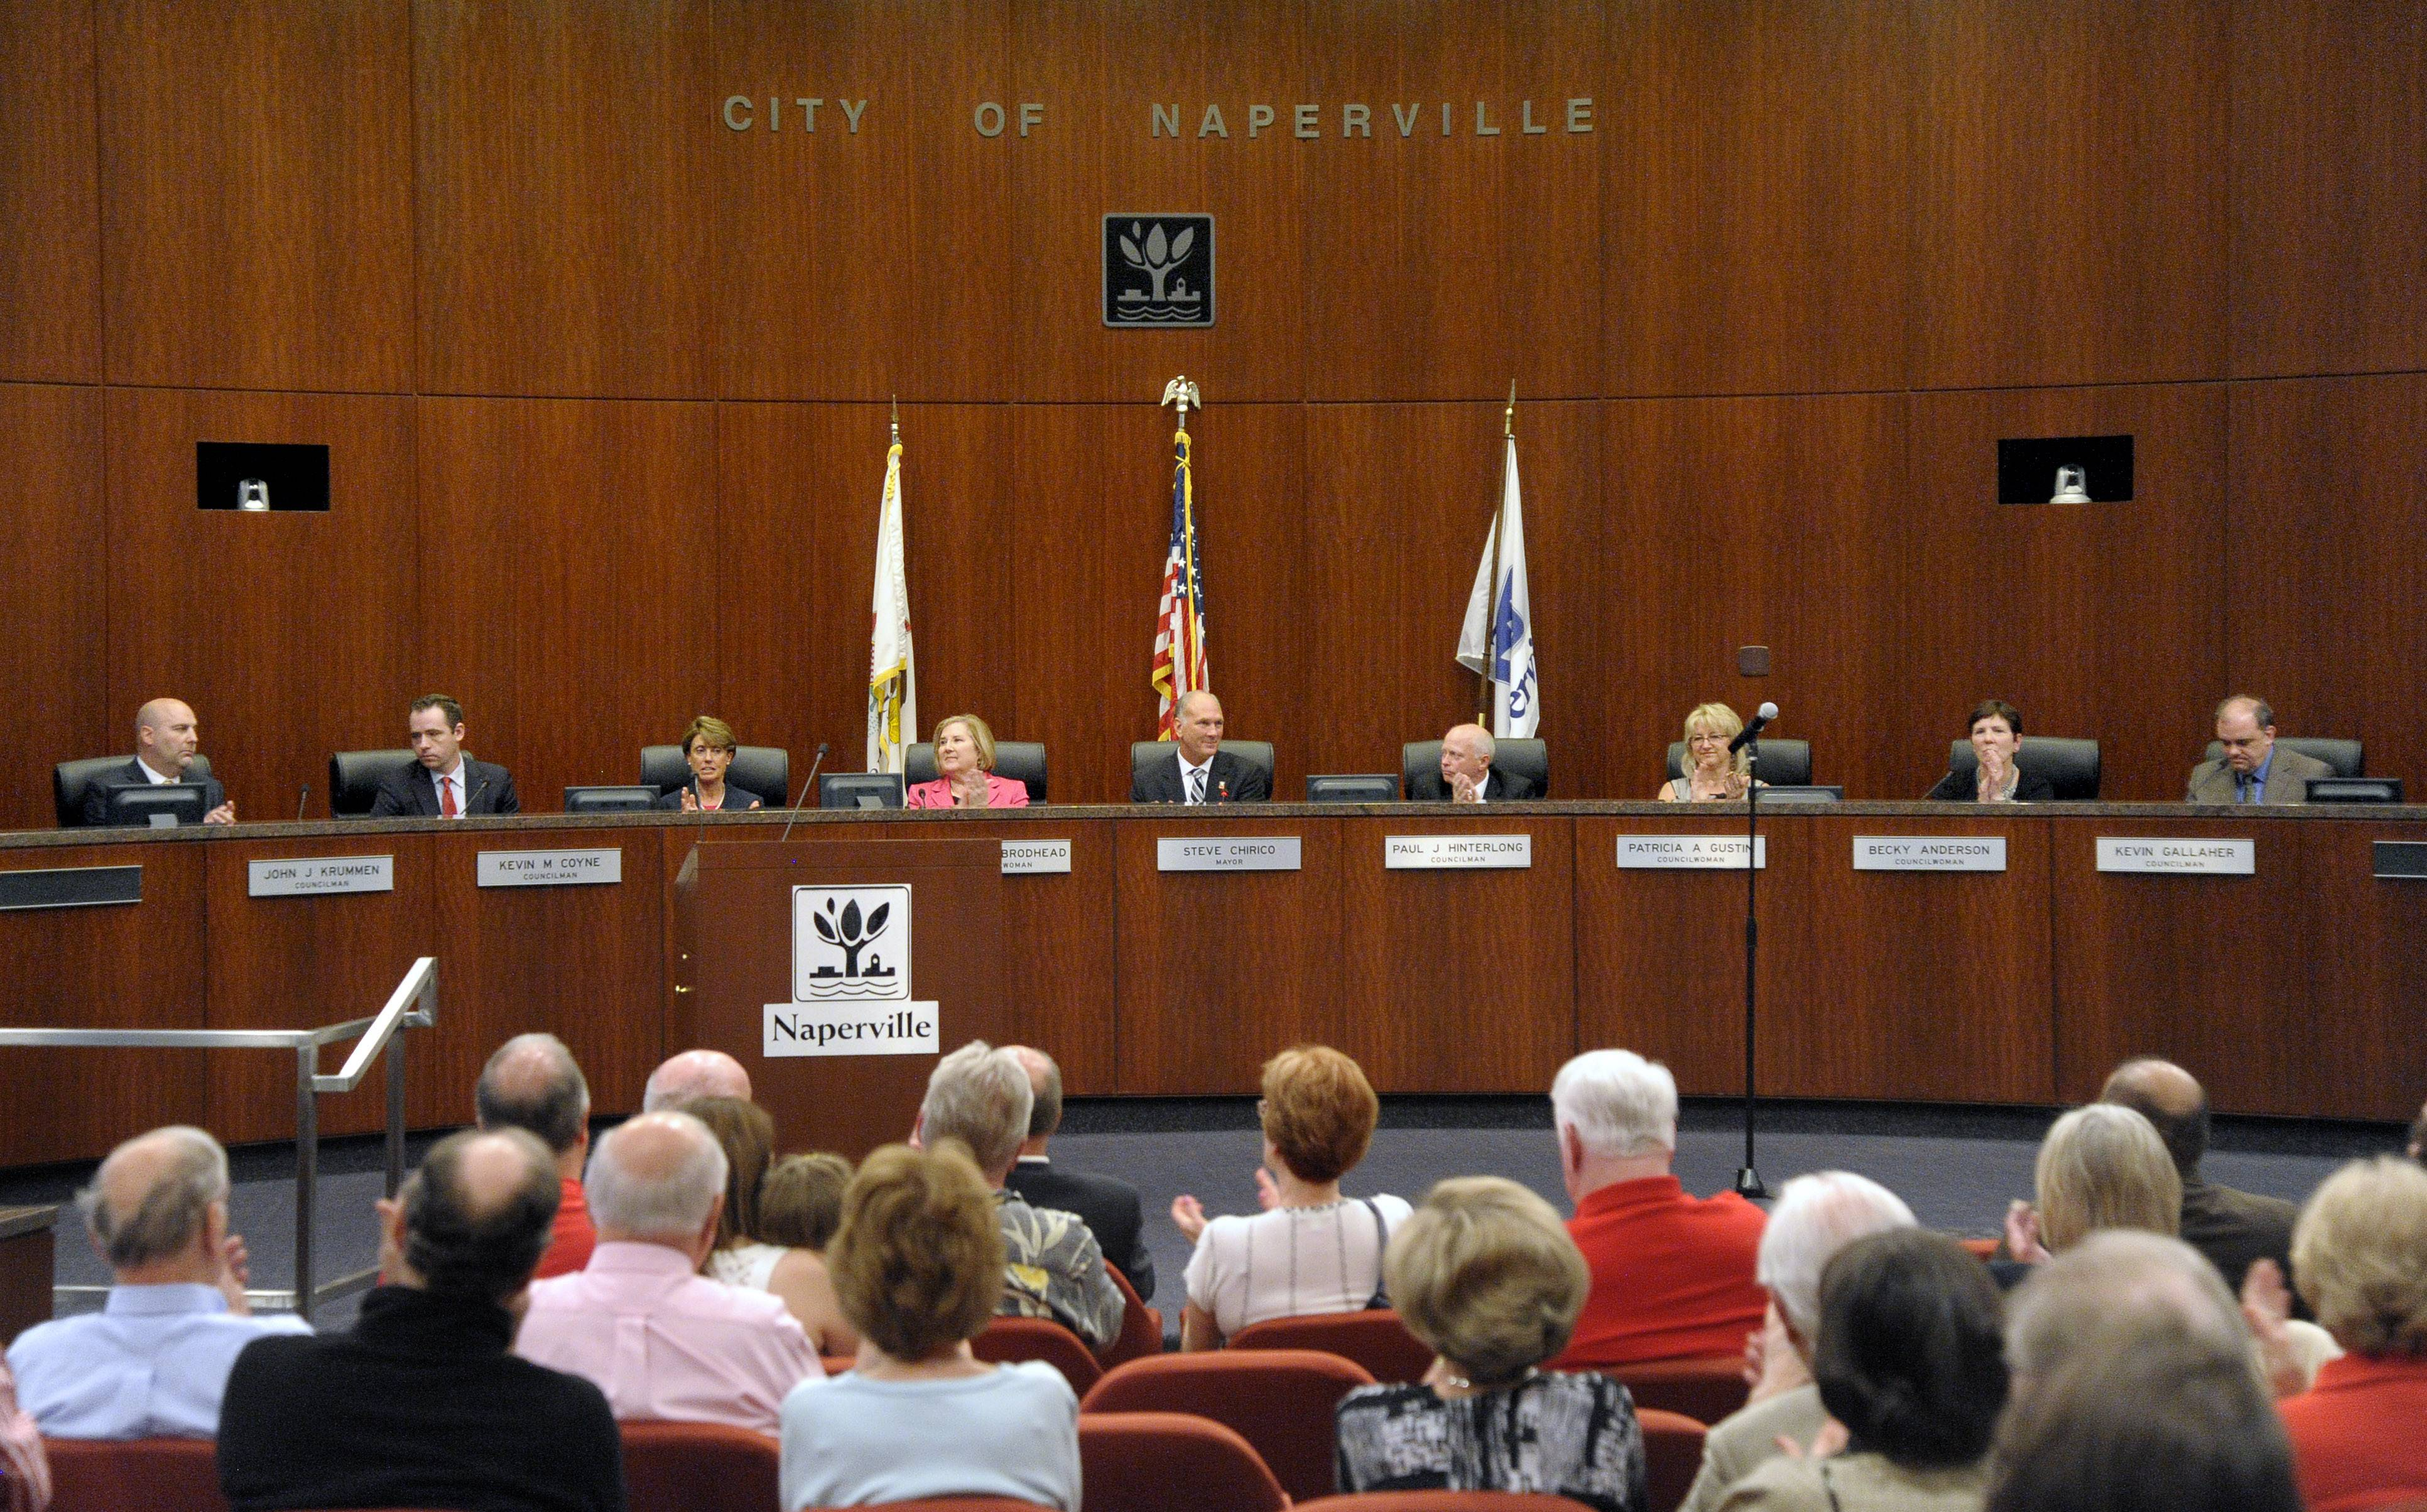 Editorial: Naperville right to end council's health benefits